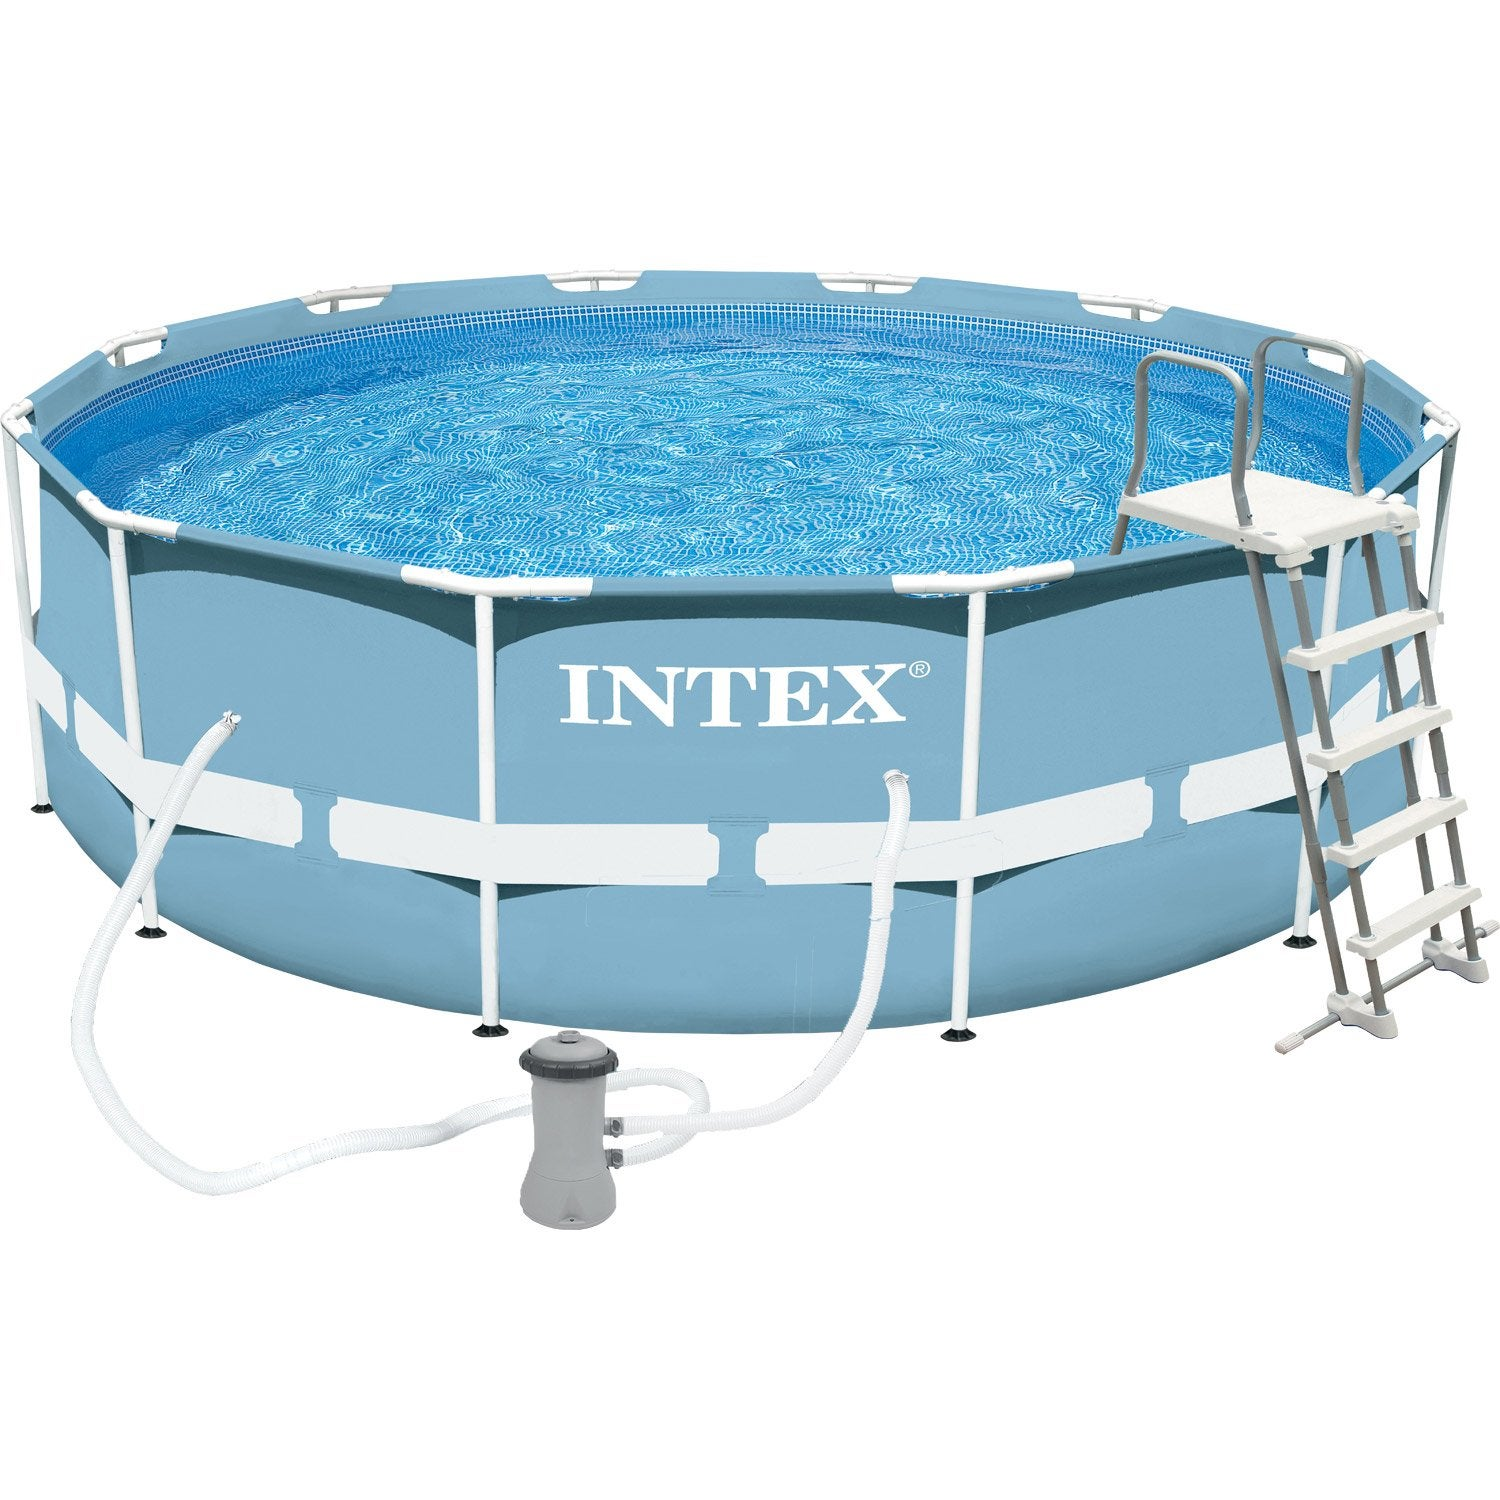 Piscine hors sol autoportante tubulaire prism frame intex - Piscine rectangulaire hors sol intex ...